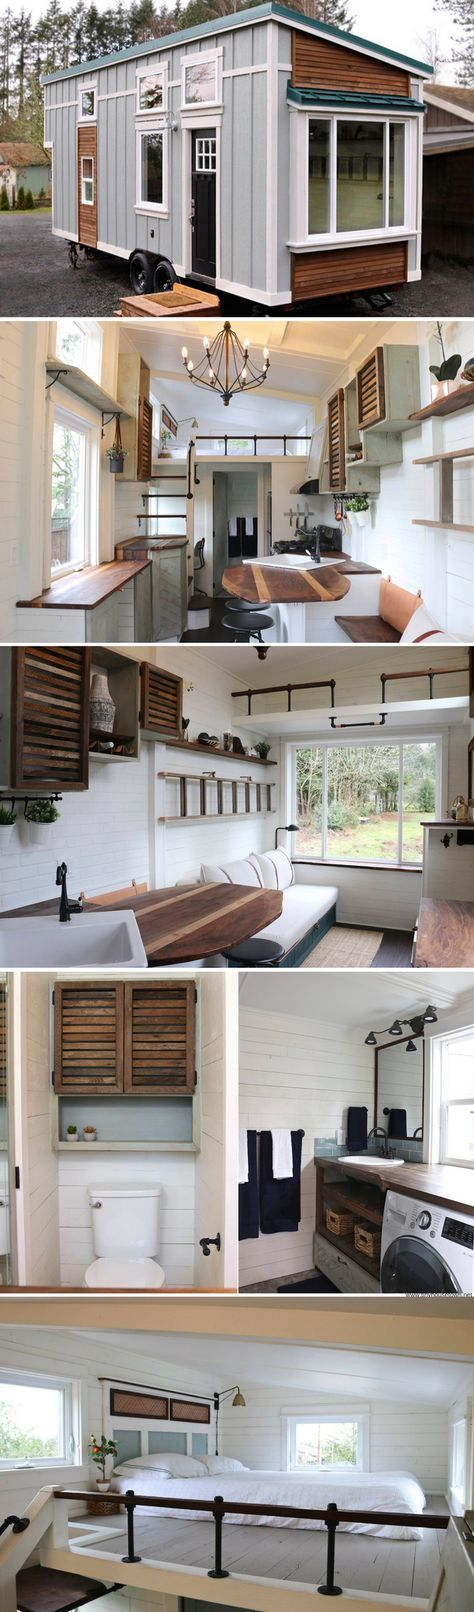 tiny getaway by handcrafted movement ideen f r dein tiny haus tiny home und mini haus tiny. Black Bedroom Furniture Sets. Home Design Ideas